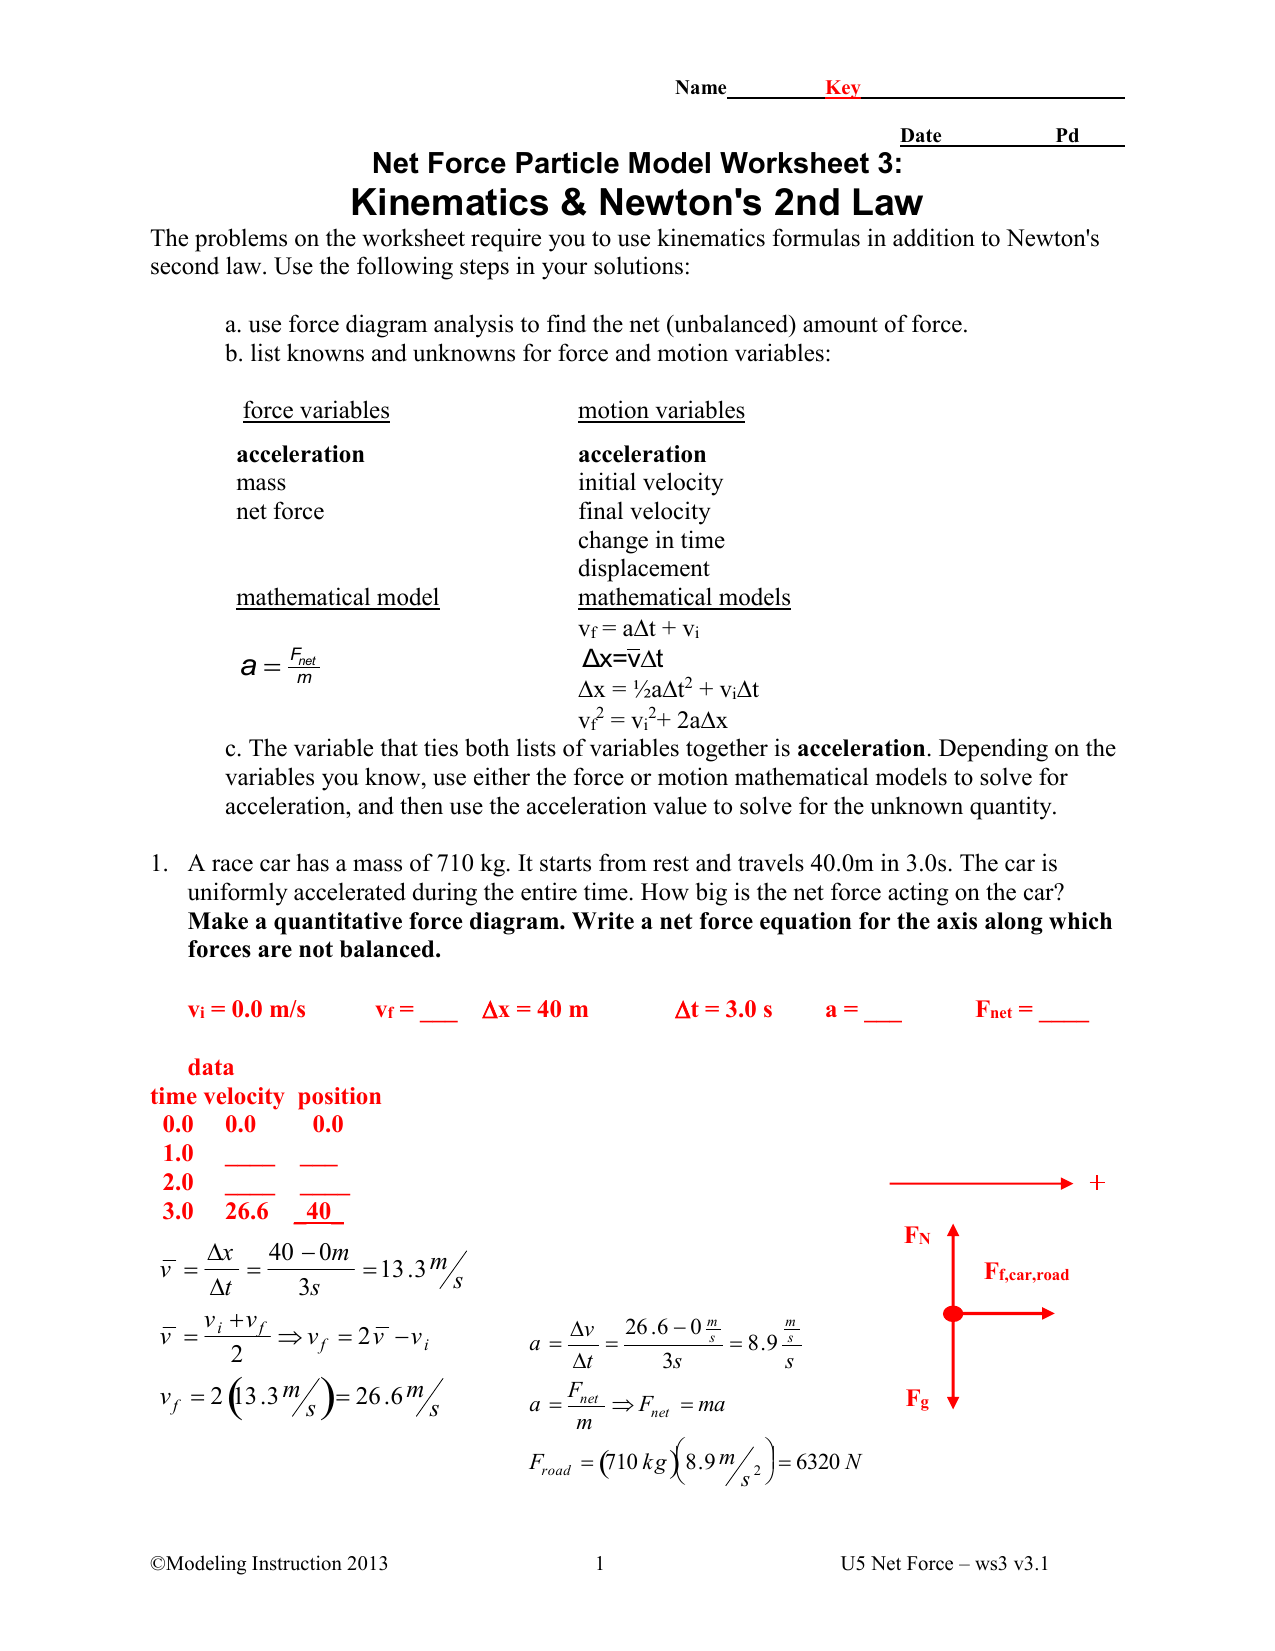 Kinematics and Newton`s 2nd Law Key